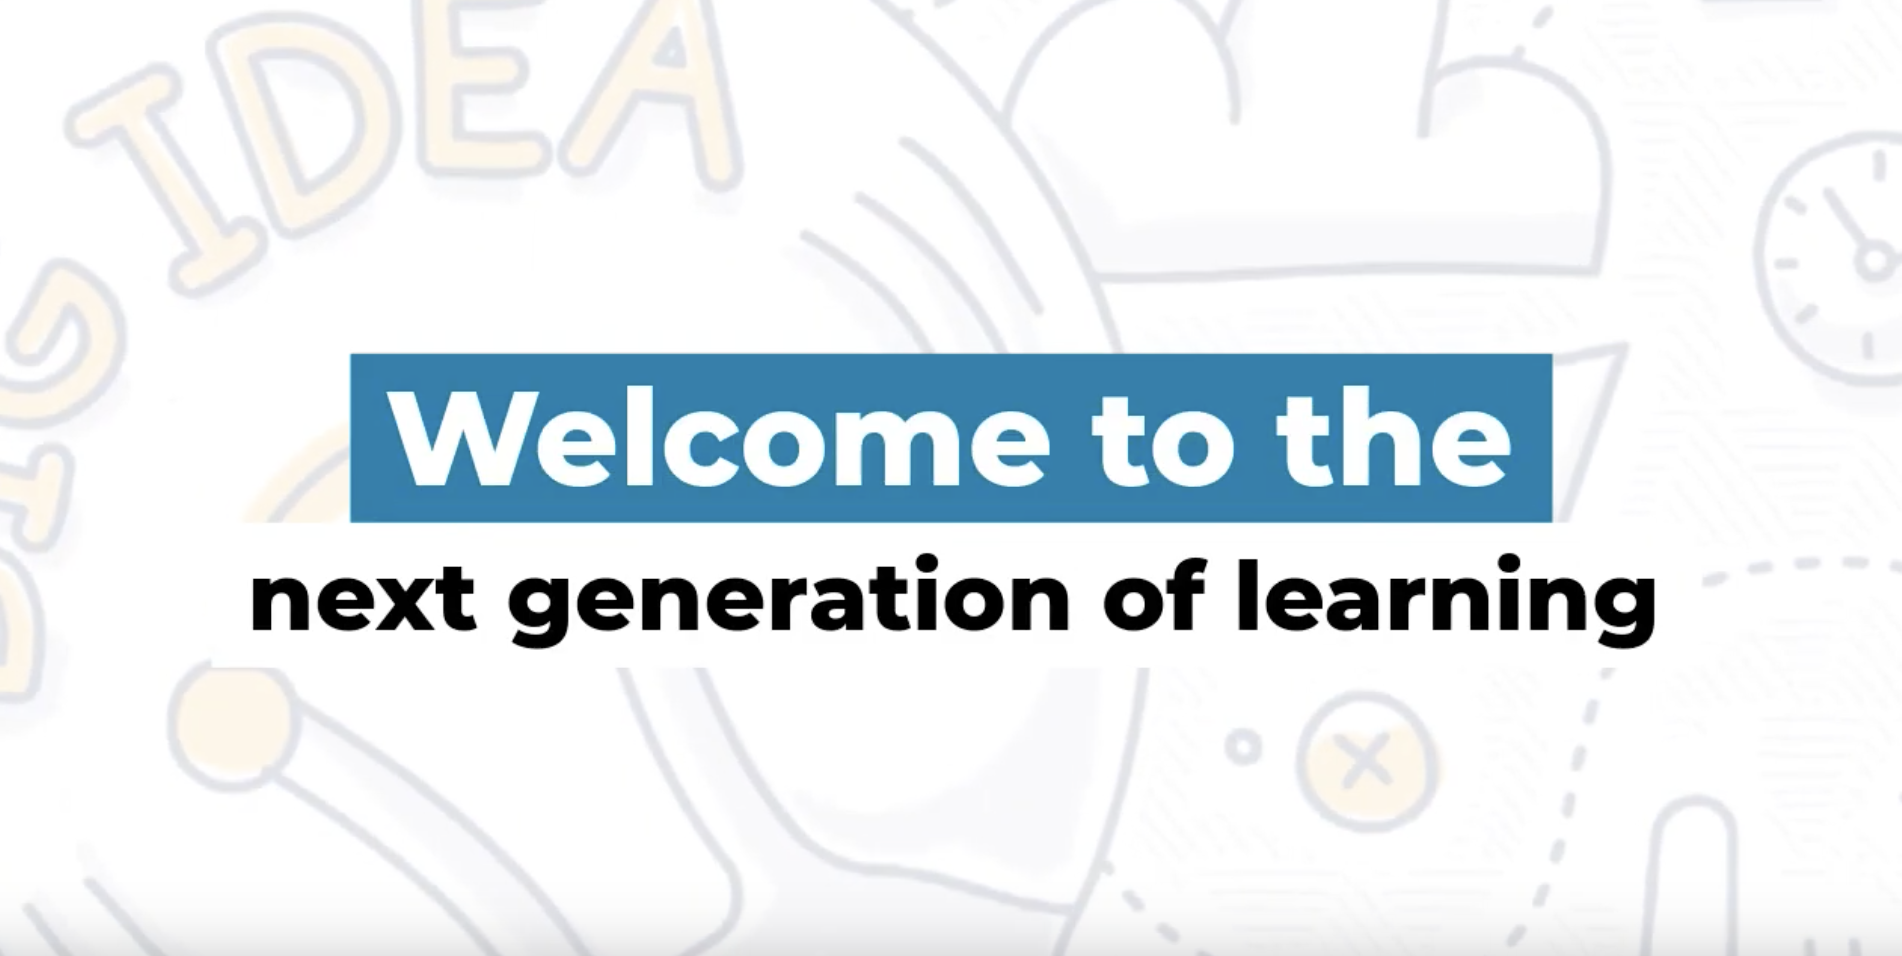 SMOA (STEM MINDS Online Academy) has officially launched!